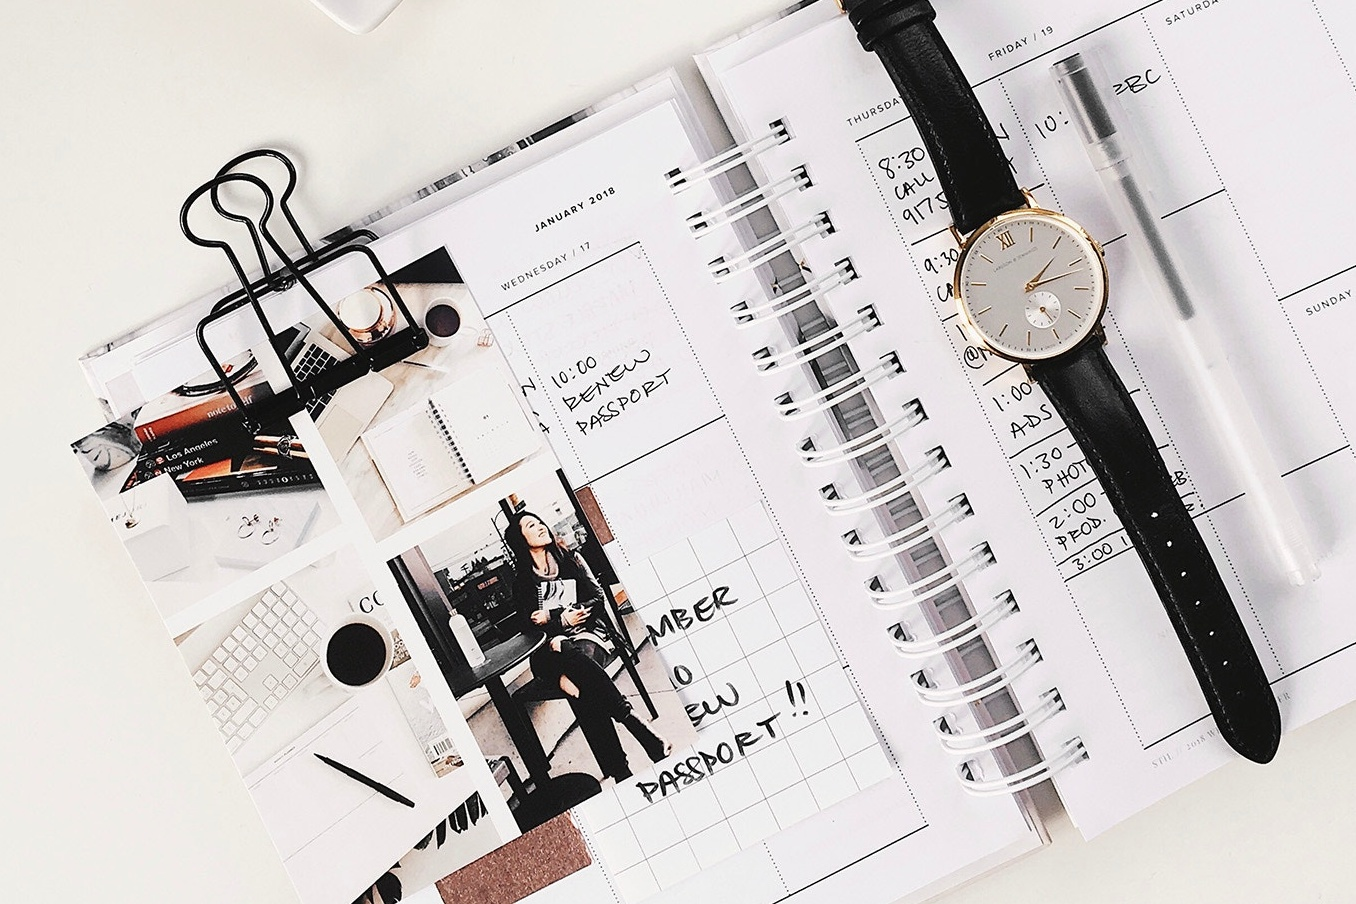 Editorial calendar creation & template - I help you create a system to plan and map out your content and social media so you can do more in less time. This includes a 60-minute call.$100+